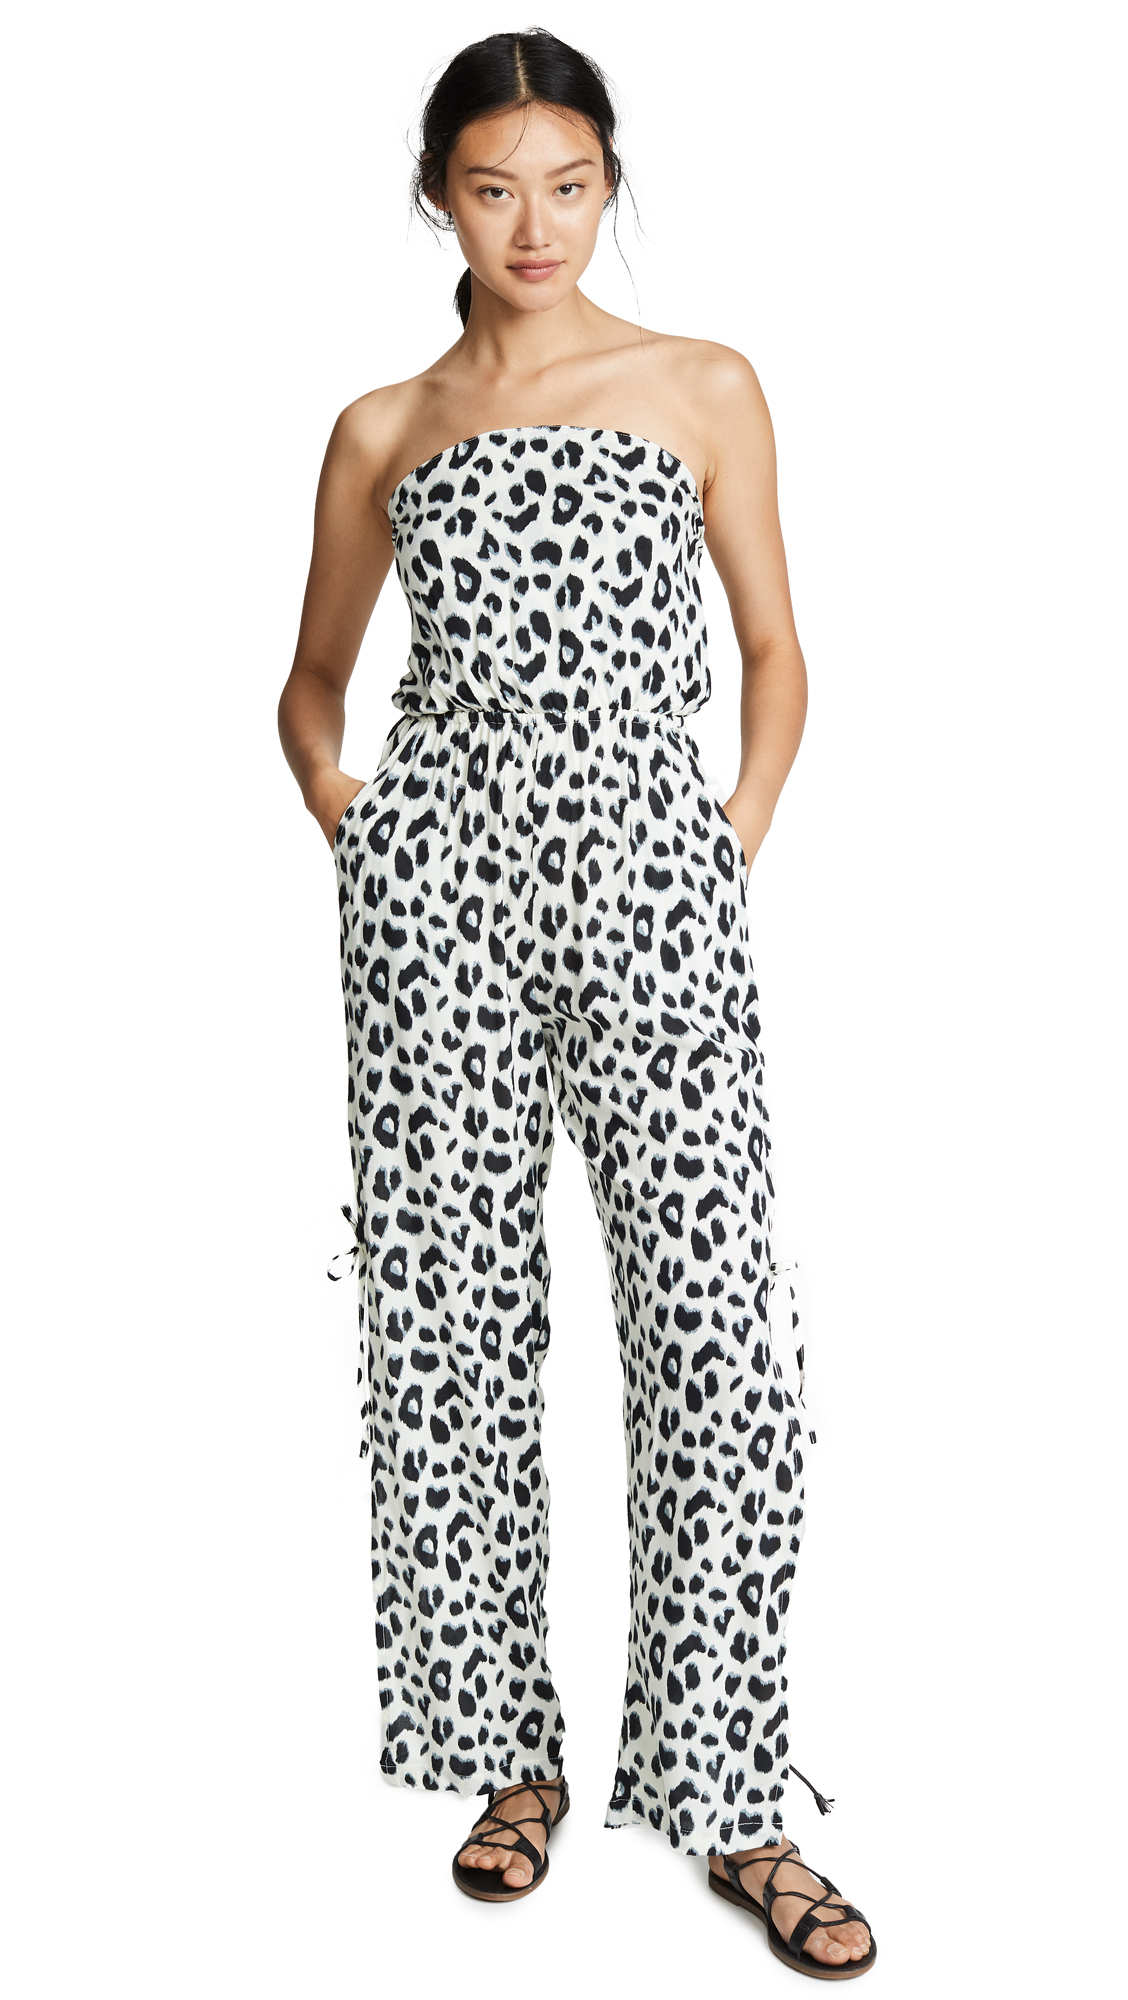 TIARE HAWAII Osaka Jumpsuit in Animal Off White/Black/Grey